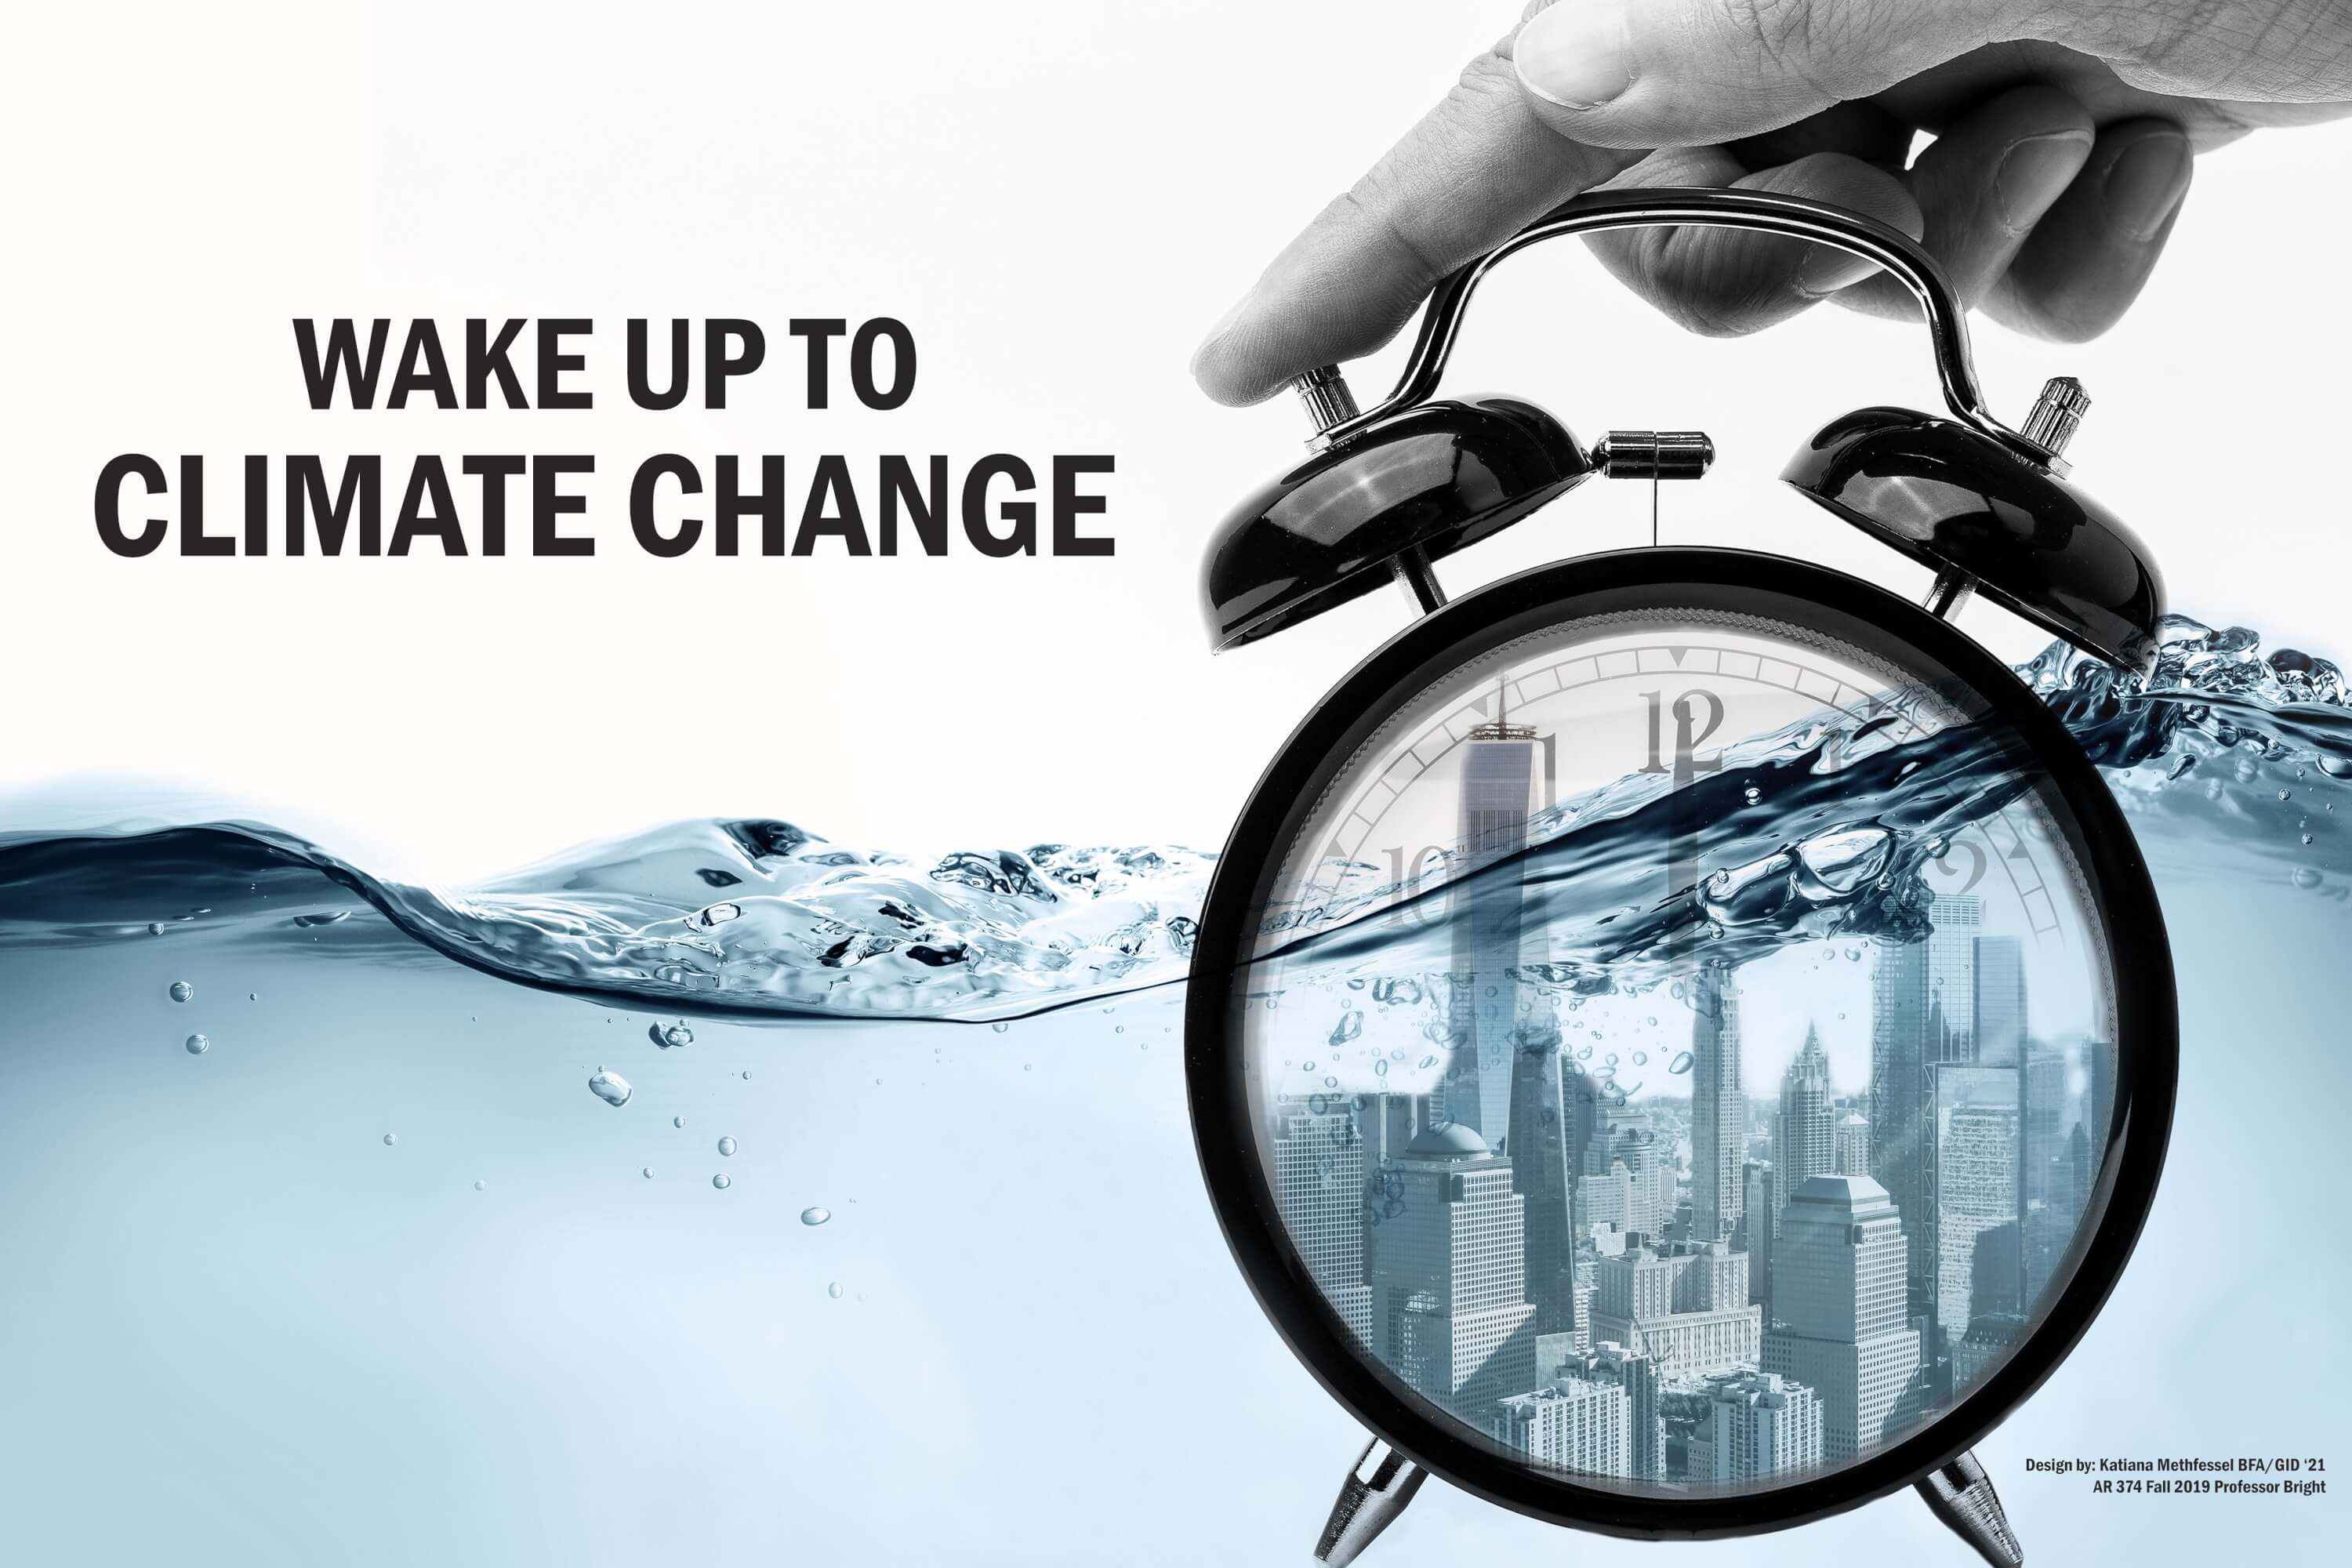 Wake up to Climate Change